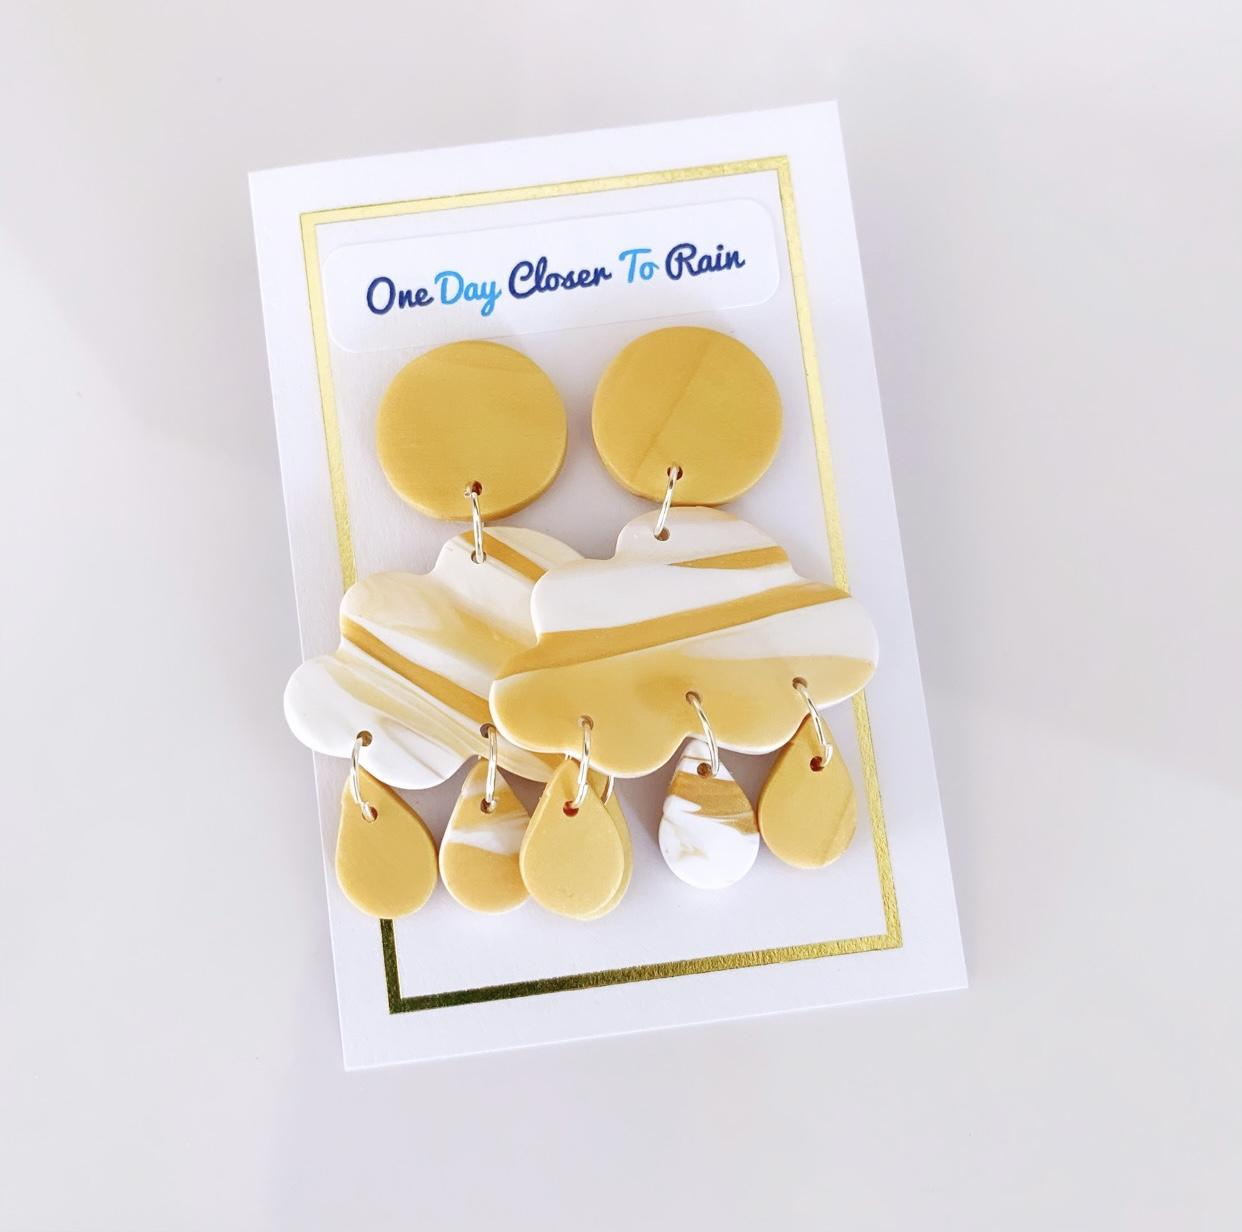 Polymer clay earrings ~ rain clouds purchased are donated to drought relief